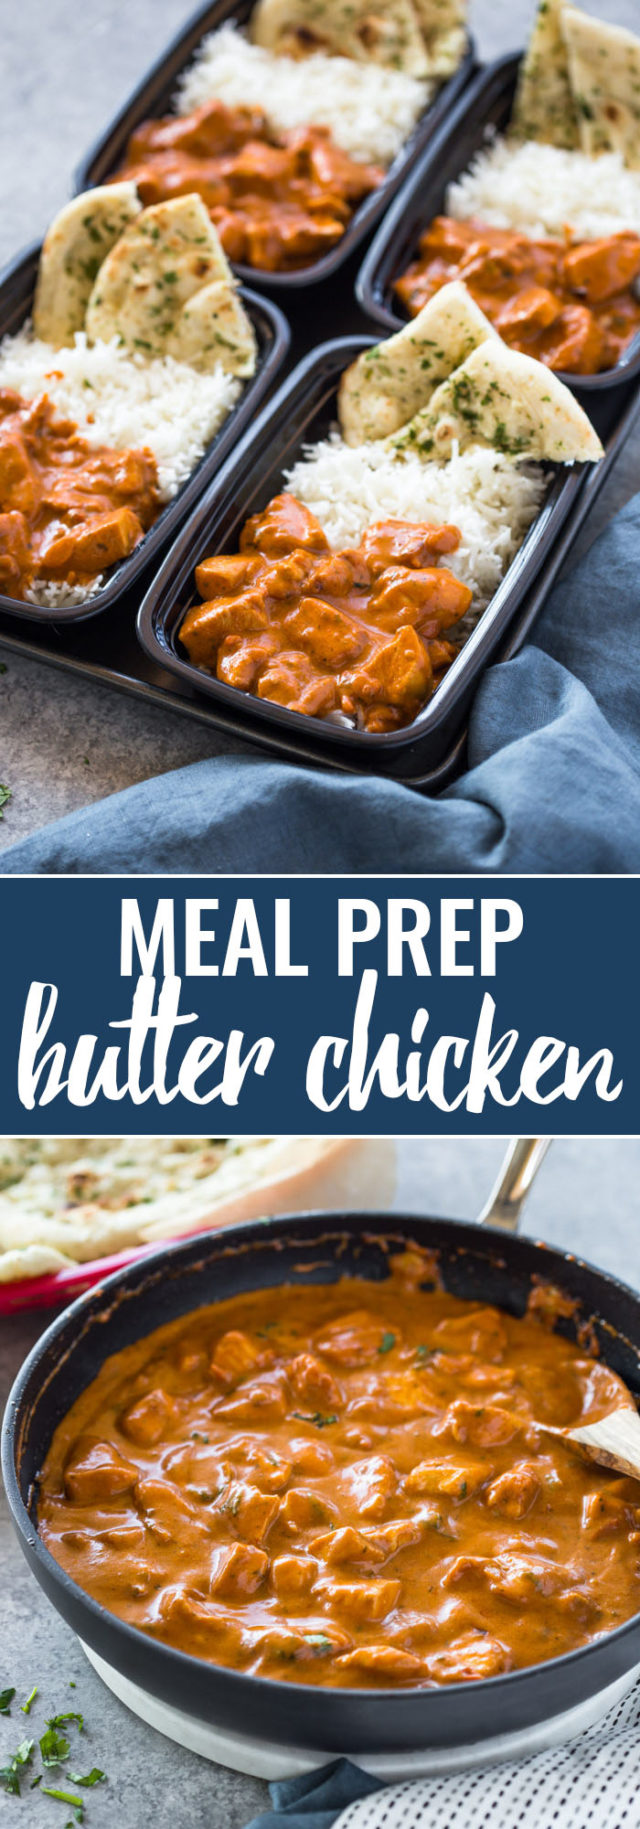 Meal-Prep Butter Chicken